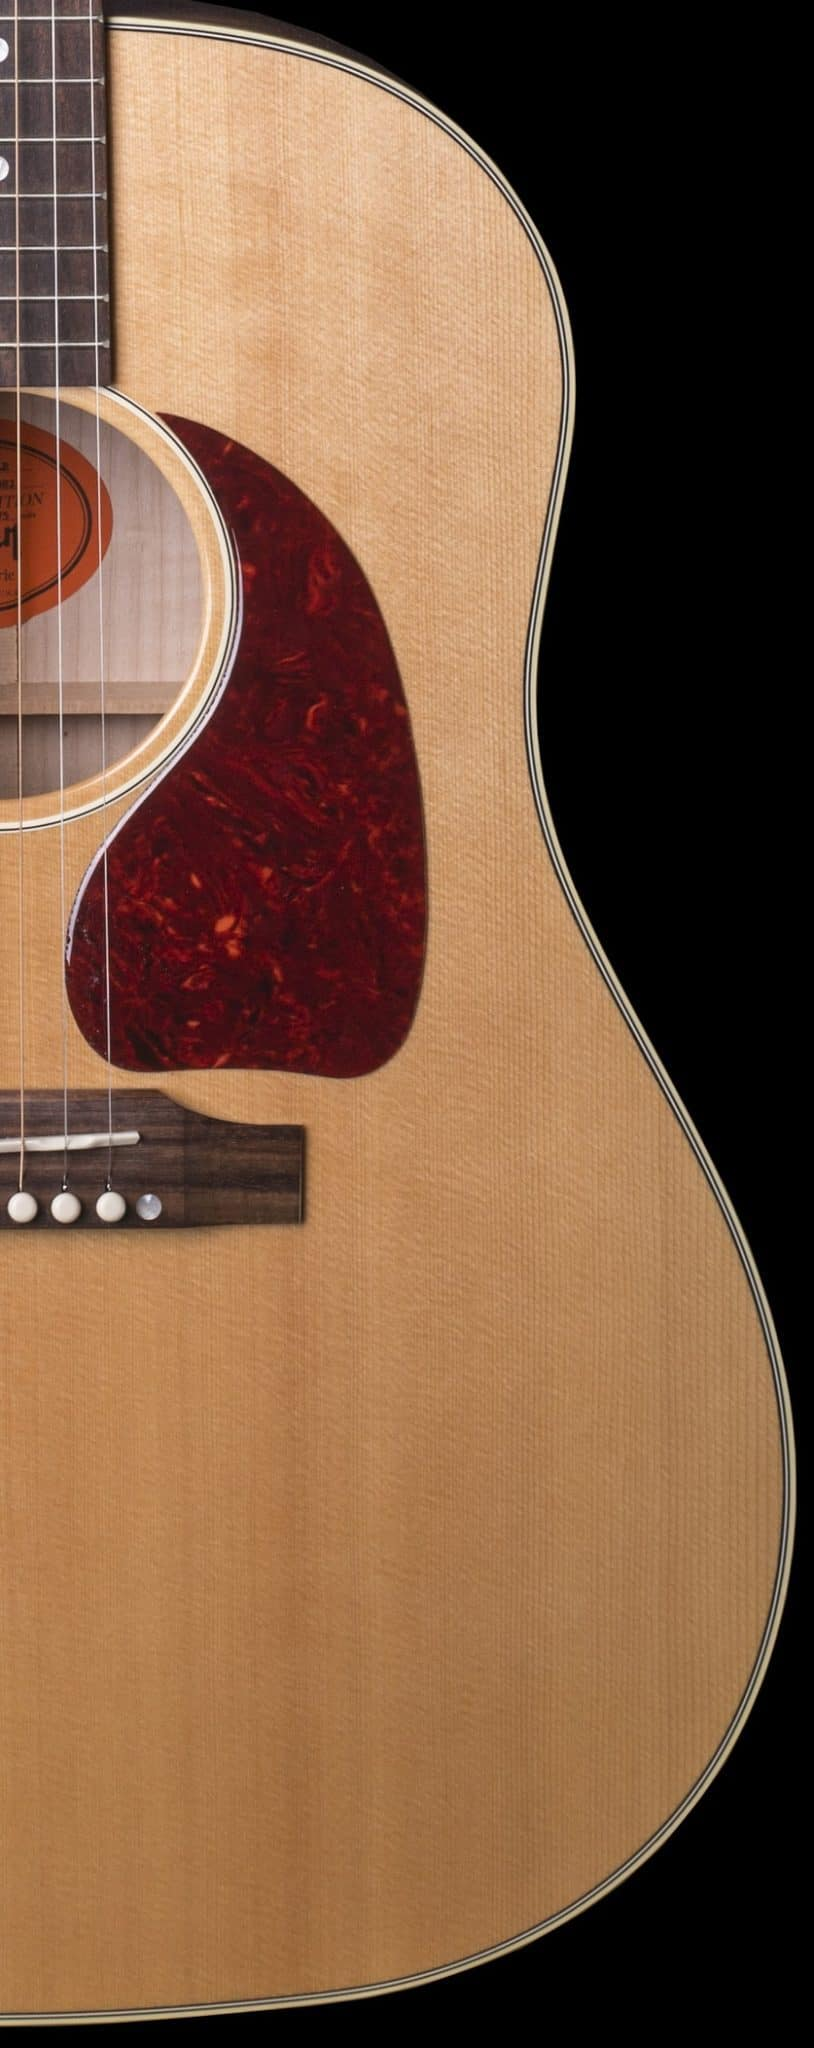 Best Acoustic Guitars 2018 Epic Guide Music Skanner Report Electricguitarcouk Lesson Electric Guitar Anatomy Its Usually Used On The Sides And Backs Of As It Complements Top Wood But Doesnt Affect Properties